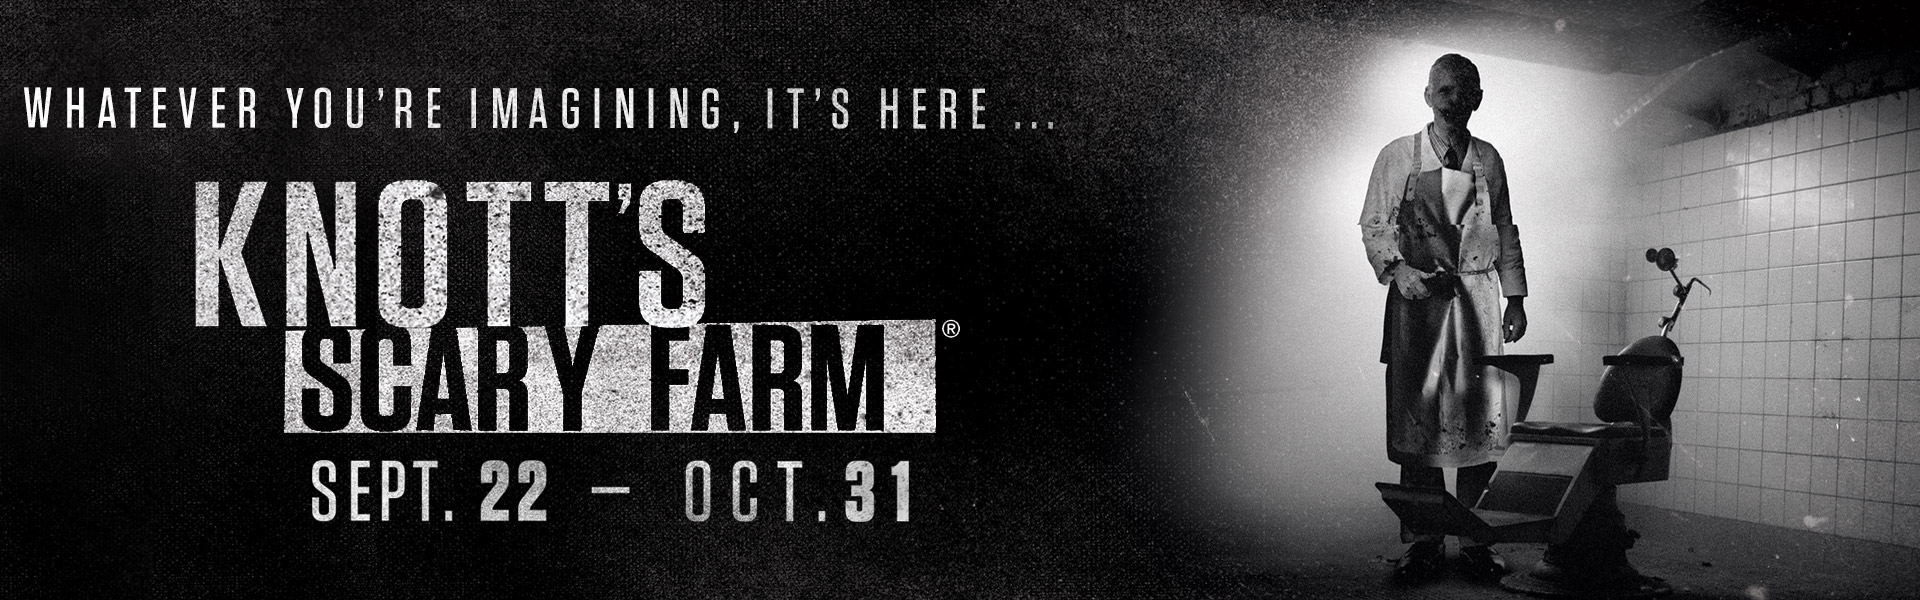 2016 scary farm homepage rotator 1 - Knotts Berry Farm Halloween Tickets